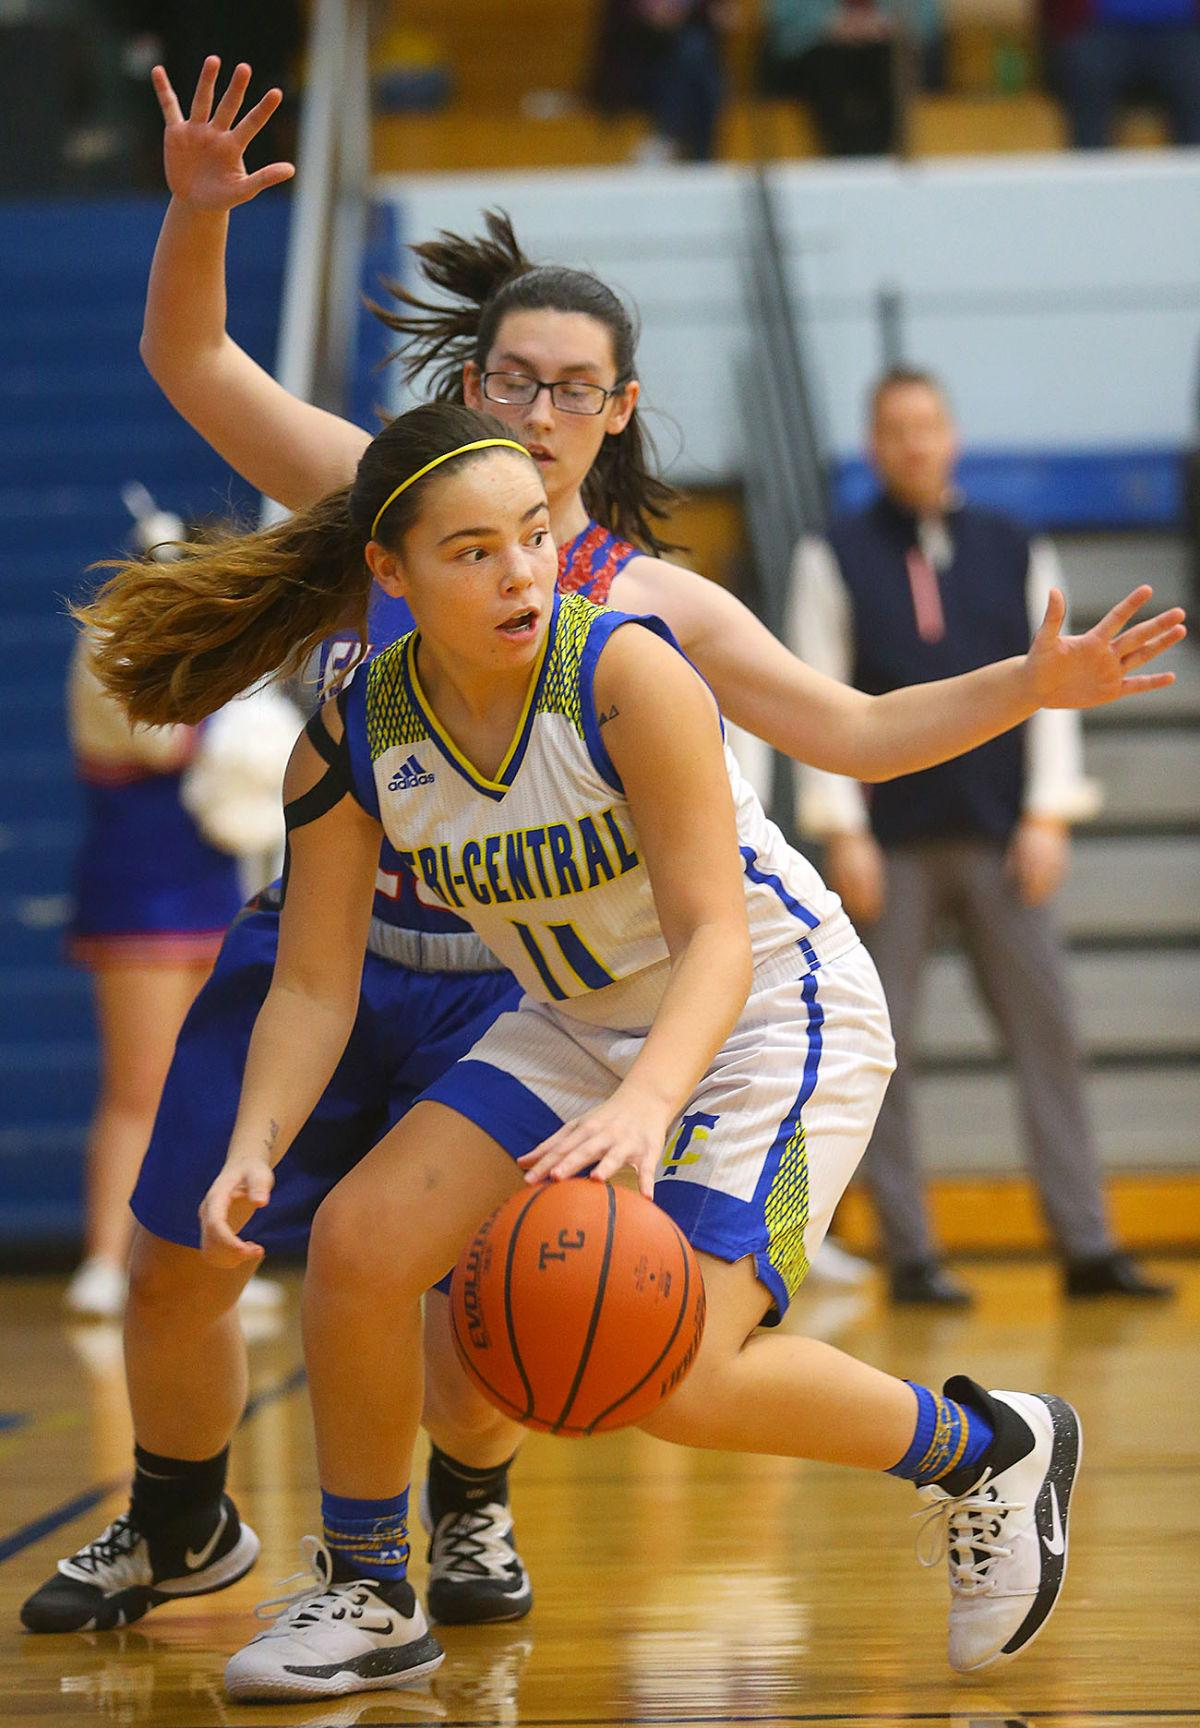 PHOTOS: Tri Central vs Elwood GBB